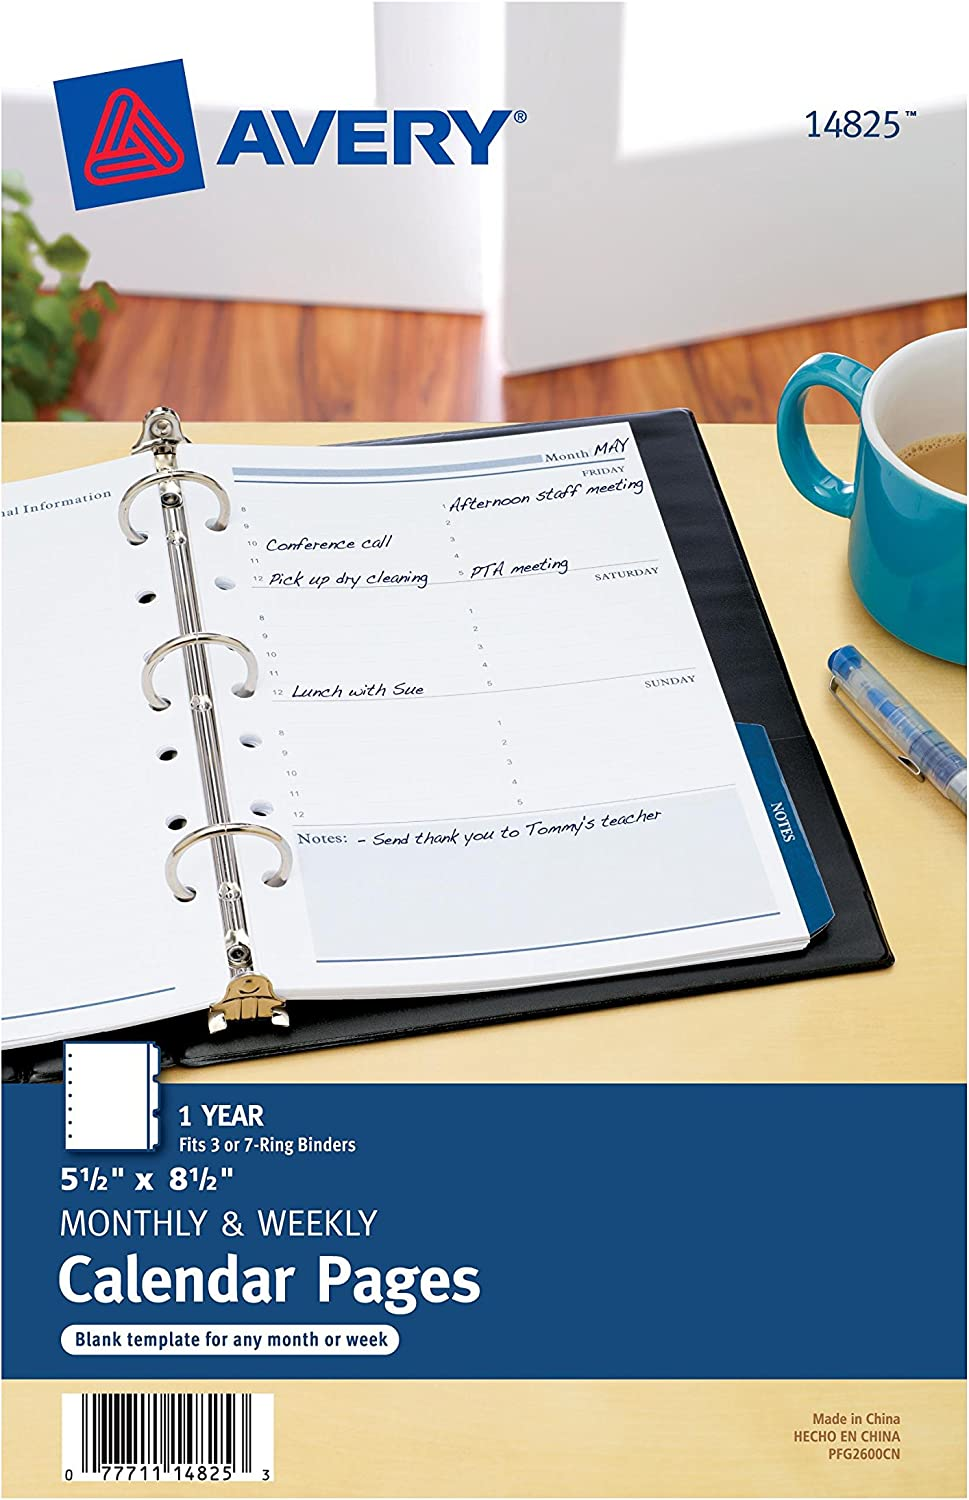 Avery Mini Monthly and Weekly Calendar Pages, 5.5 x8.5 inches (14825)